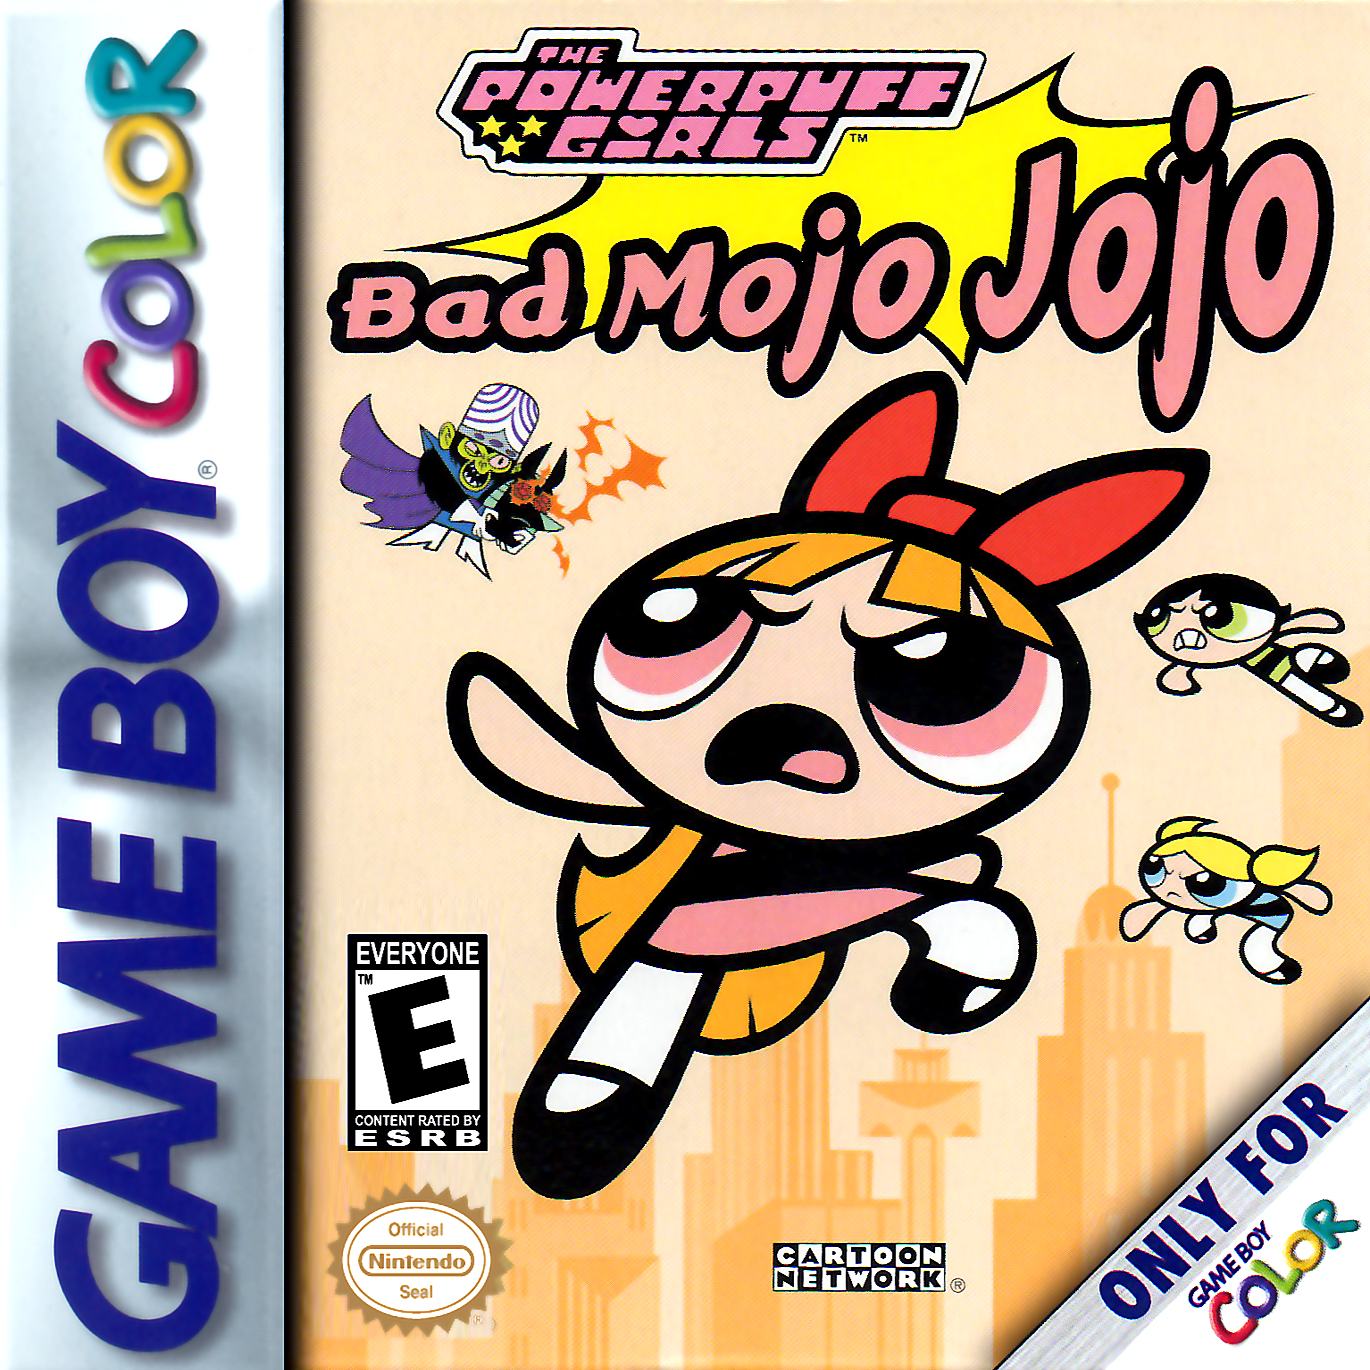 Game boy color online games - Play Powerpuff Girls The Bad Mojo Jojo Nintendo Game Boy Color Online